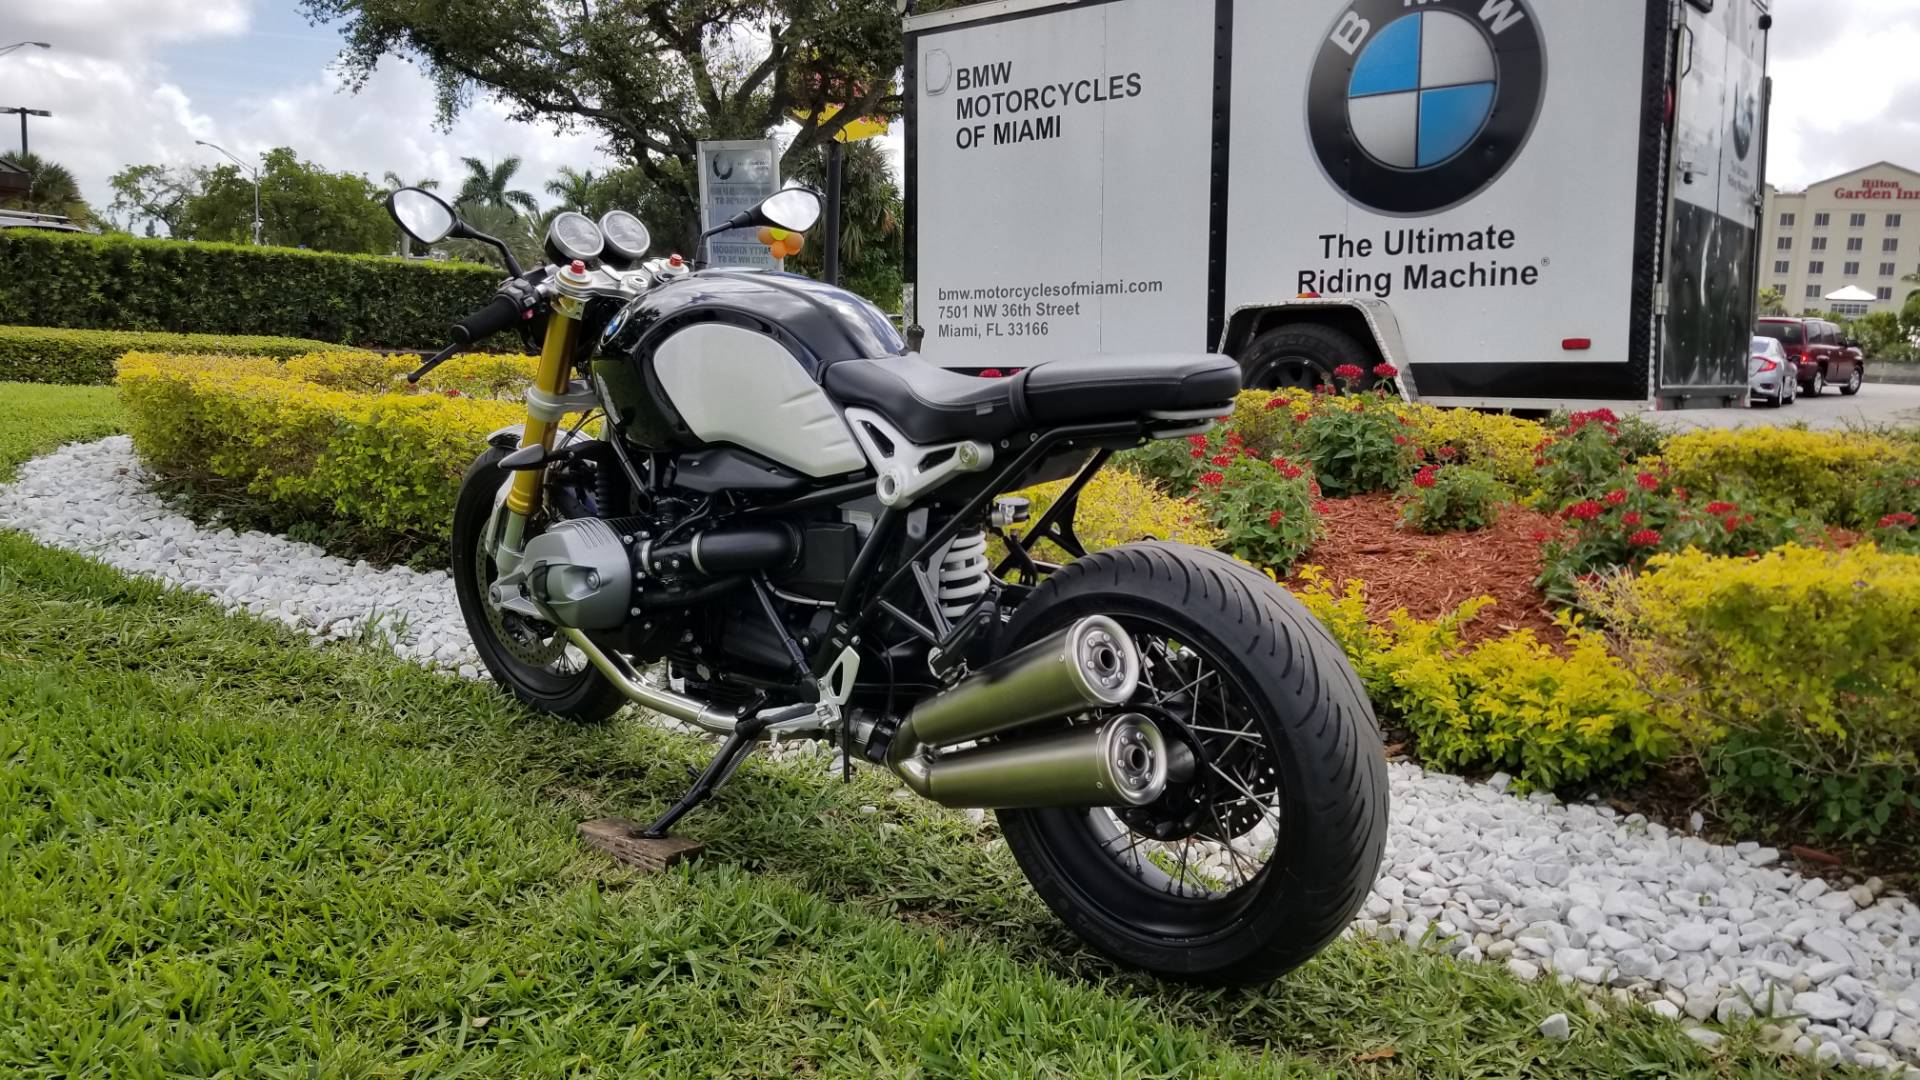 Used 2017 BMW R nine T For Sale, Pre owned BMW R nineT For Sale, BMW Motorcycle RnineT, BMW Motorcycles of Miami, Motorcycles of Miami, Motorcycles Miami - Photo 9